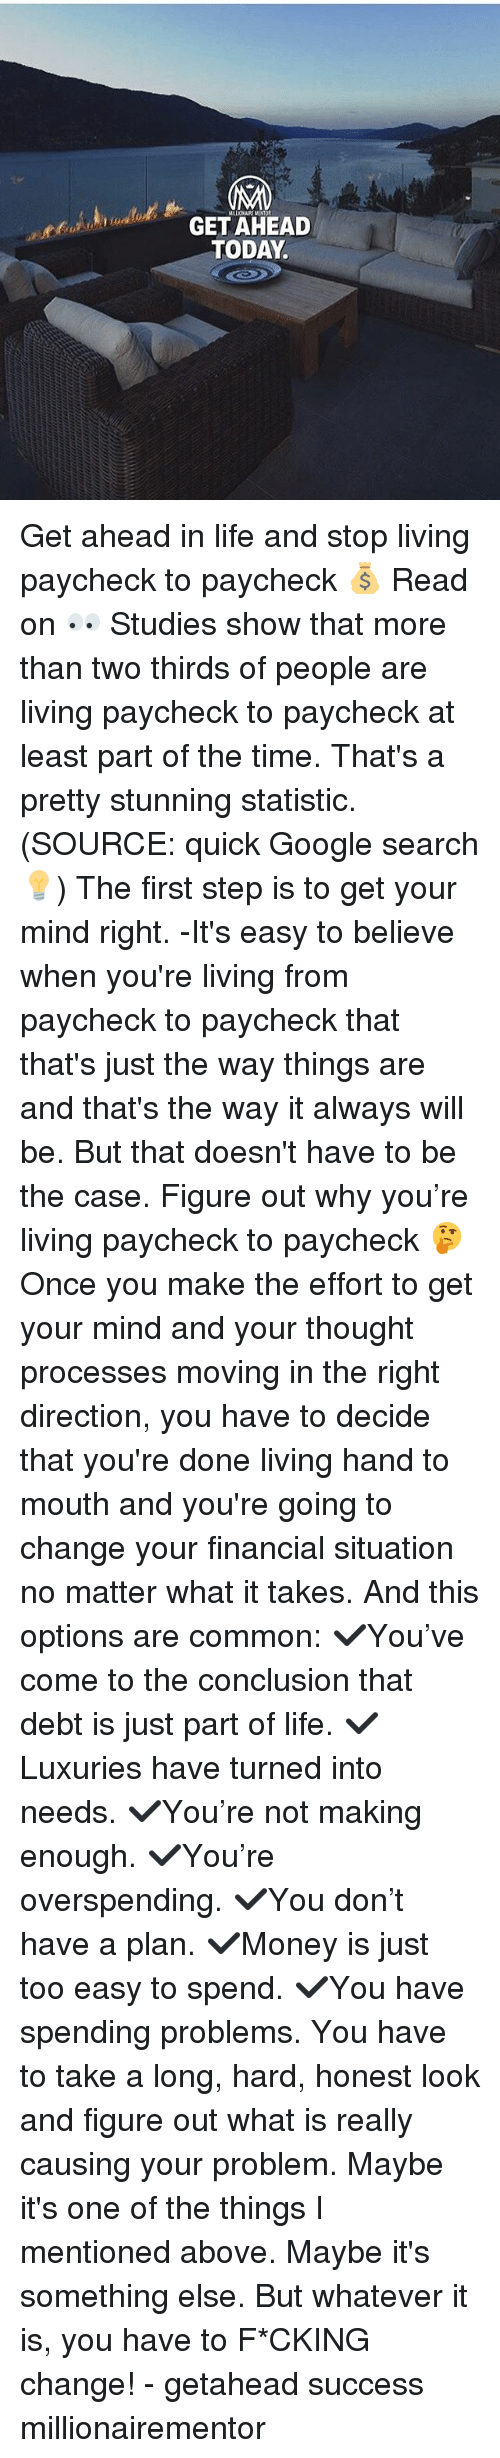 moving in: GET AHEAD  TODAY Get ahead in life and stop living paycheck to paycheck 💰 Read on 👀 Studies show that more than two thirds of people are living paycheck to paycheck at least part of the time. That's a pretty stunning statistic. (SOURCE: quick Google search💡) The first step is to get your mind right. -It's easy to believe when you're living from paycheck to paycheck that that's just the way things are and that's the way it always will be. But that doesn't have to be the case. Figure out why you're living paycheck to paycheck 🤔 Once you make the effort to get your mind and your thought processes moving in the right direction, you have to decide that you're done living hand to mouth and you're going to change your financial situation no matter what it takes. And this options are common: ✔️You've come to the conclusion that debt is just part of life. ✔️Luxuries have turned into needs. ✔️You're not making enough. ✔️You're overspending. ✔️You don't have a plan. ✔️Money is just too easy to spend. ✔️You have spending problems. You have to take a long, hard, honest look and figure out what is really causing your problem. Maybe it's one of the things I mentioned above. Maybe it's something else. But whatever it is, you have to F*CKING change! - getahead success millionairementor